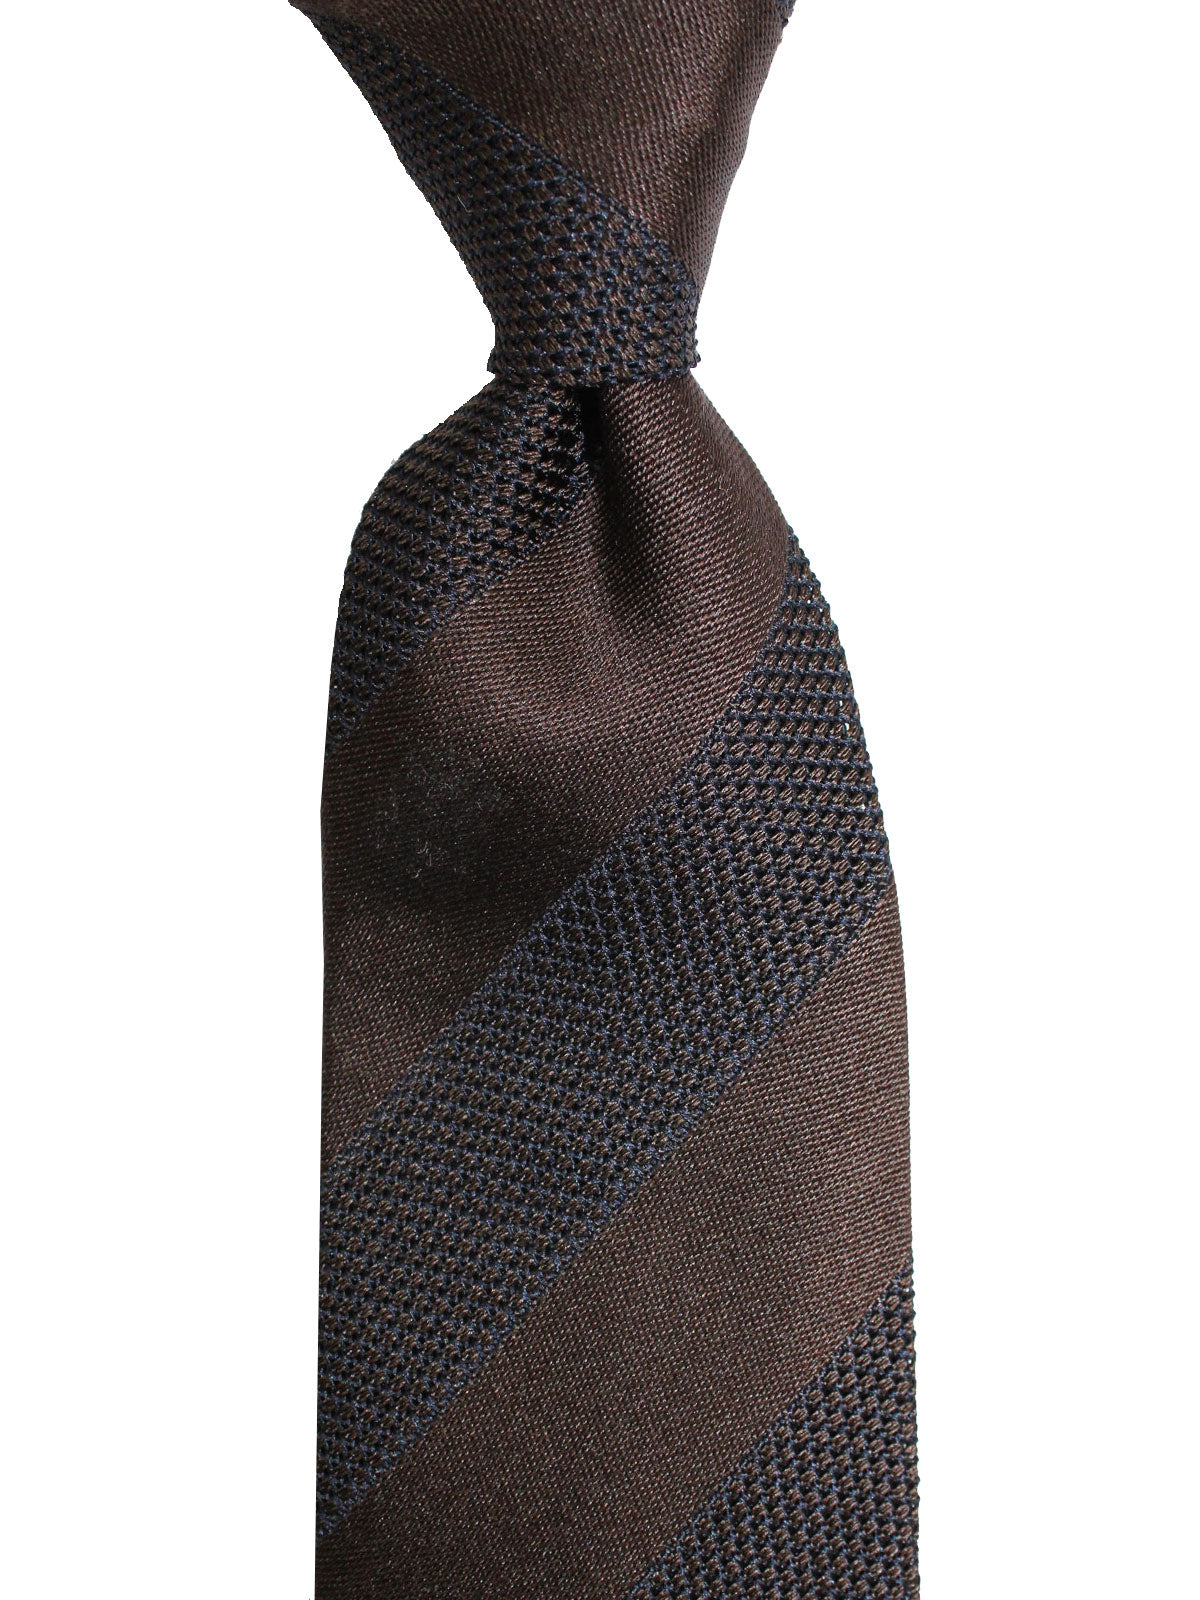 Tom Ford Tie Brown Stripes Design